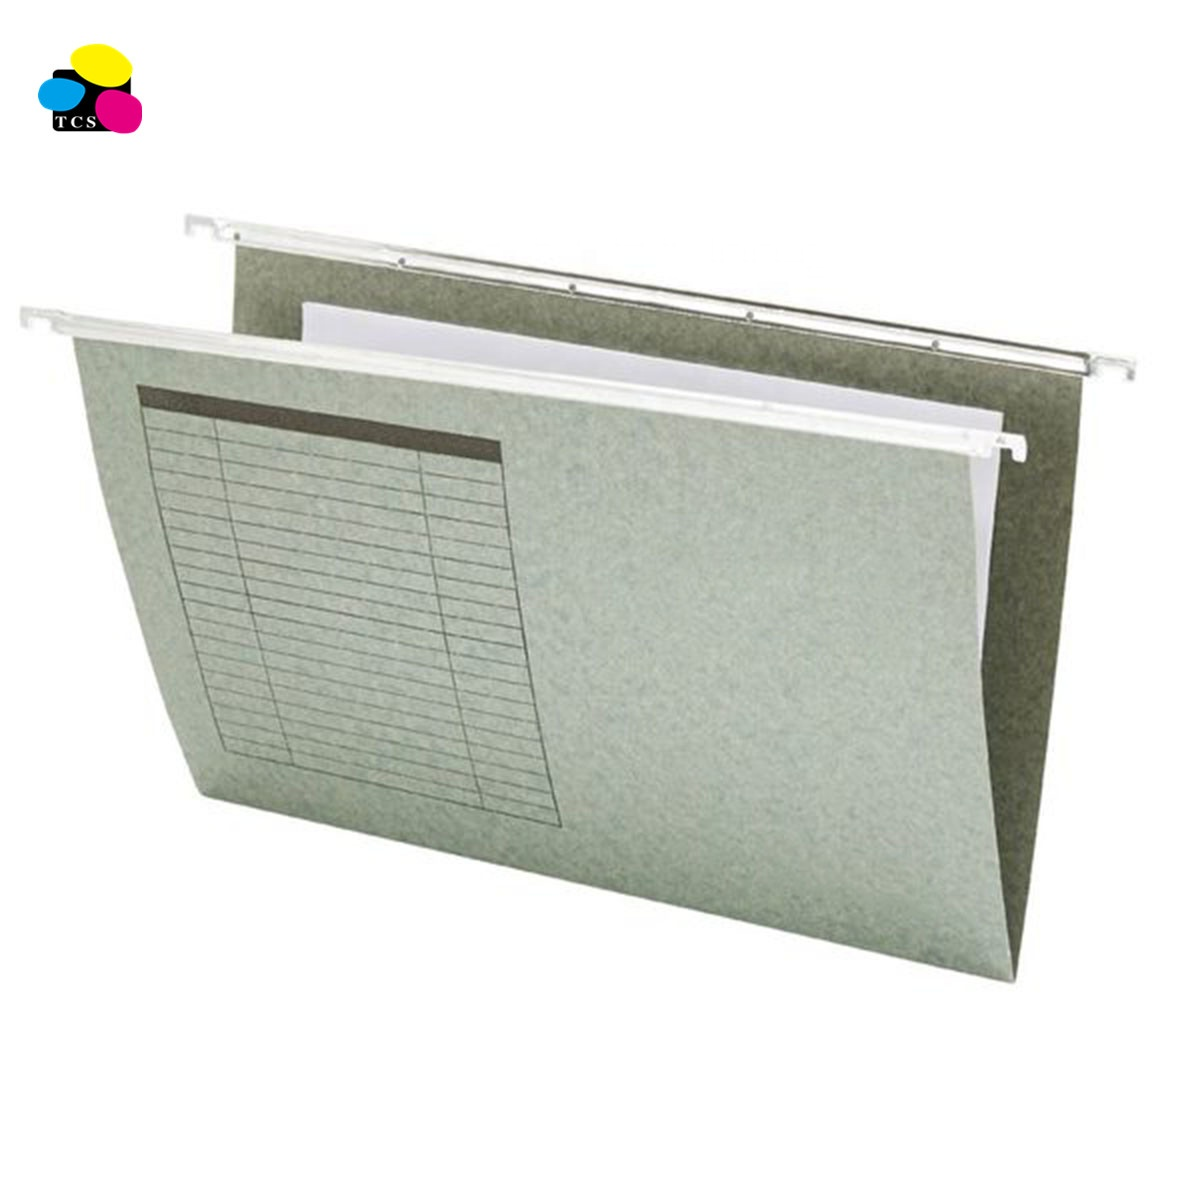 Office stationery 25pcs/box A4 Size 11pt Paper Material Suspension Hanging File Folders